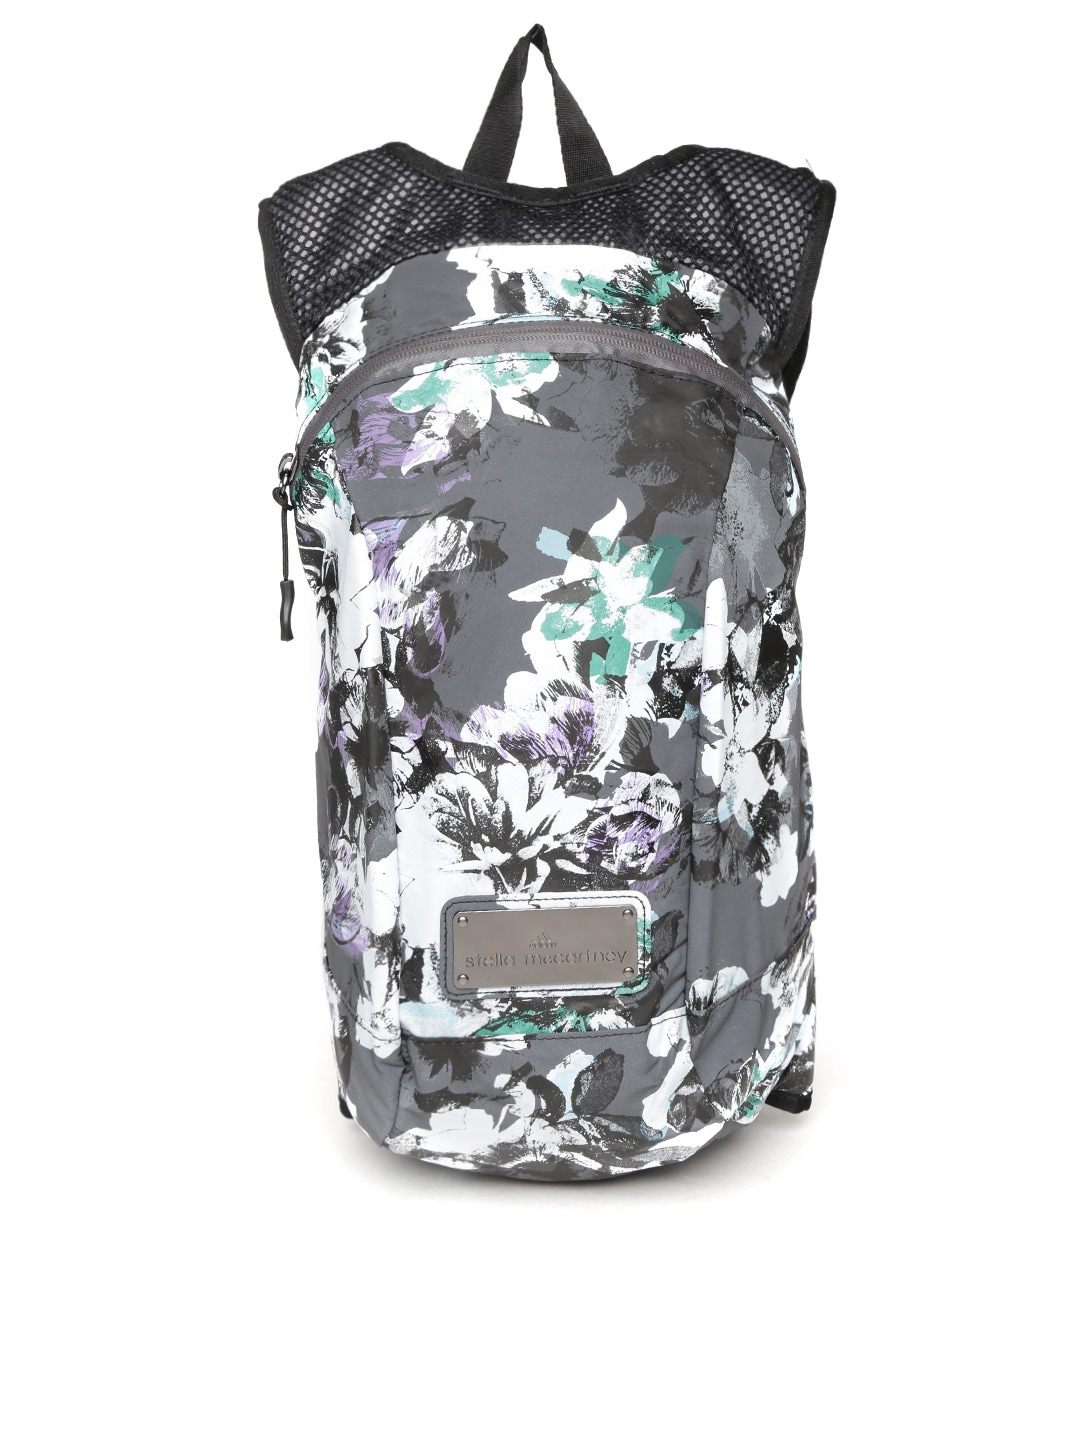 4fea623ea6 Adidas s94856 By Stella Mccartney Women Grey Pr Floral Print Backpack-  Price in India